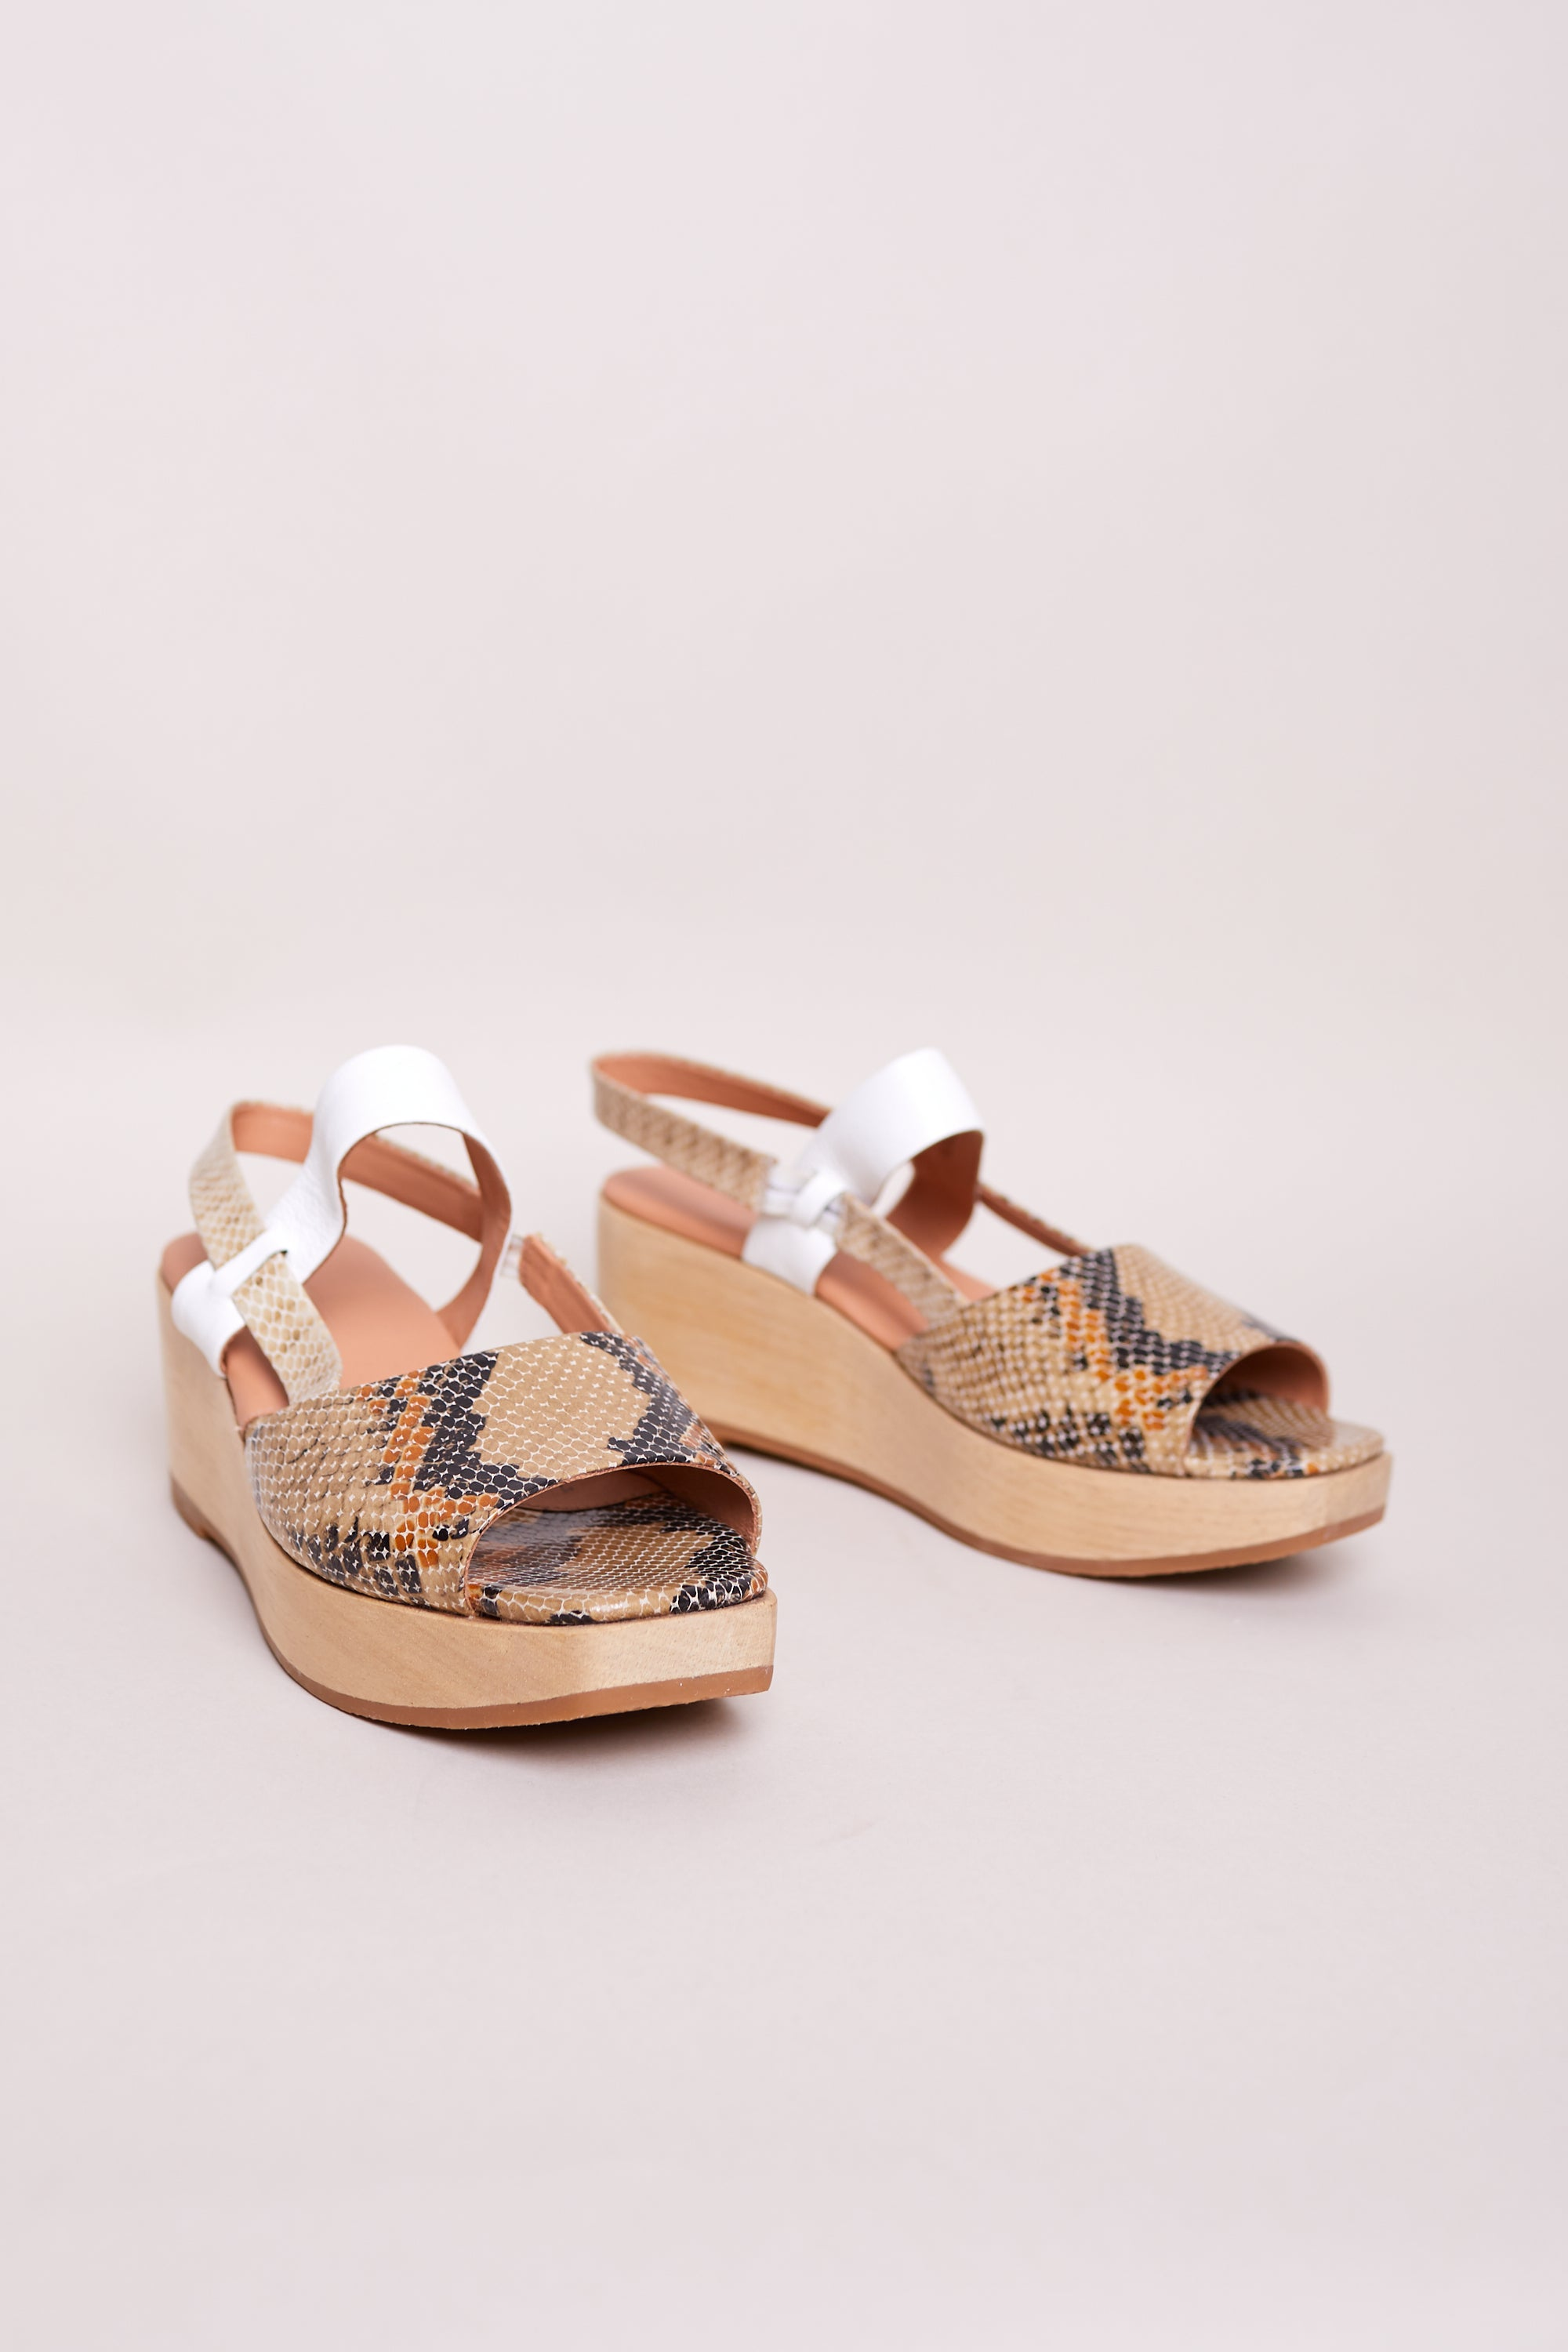 Rachel Comey New Kinta in Bone - Vert & Vogue